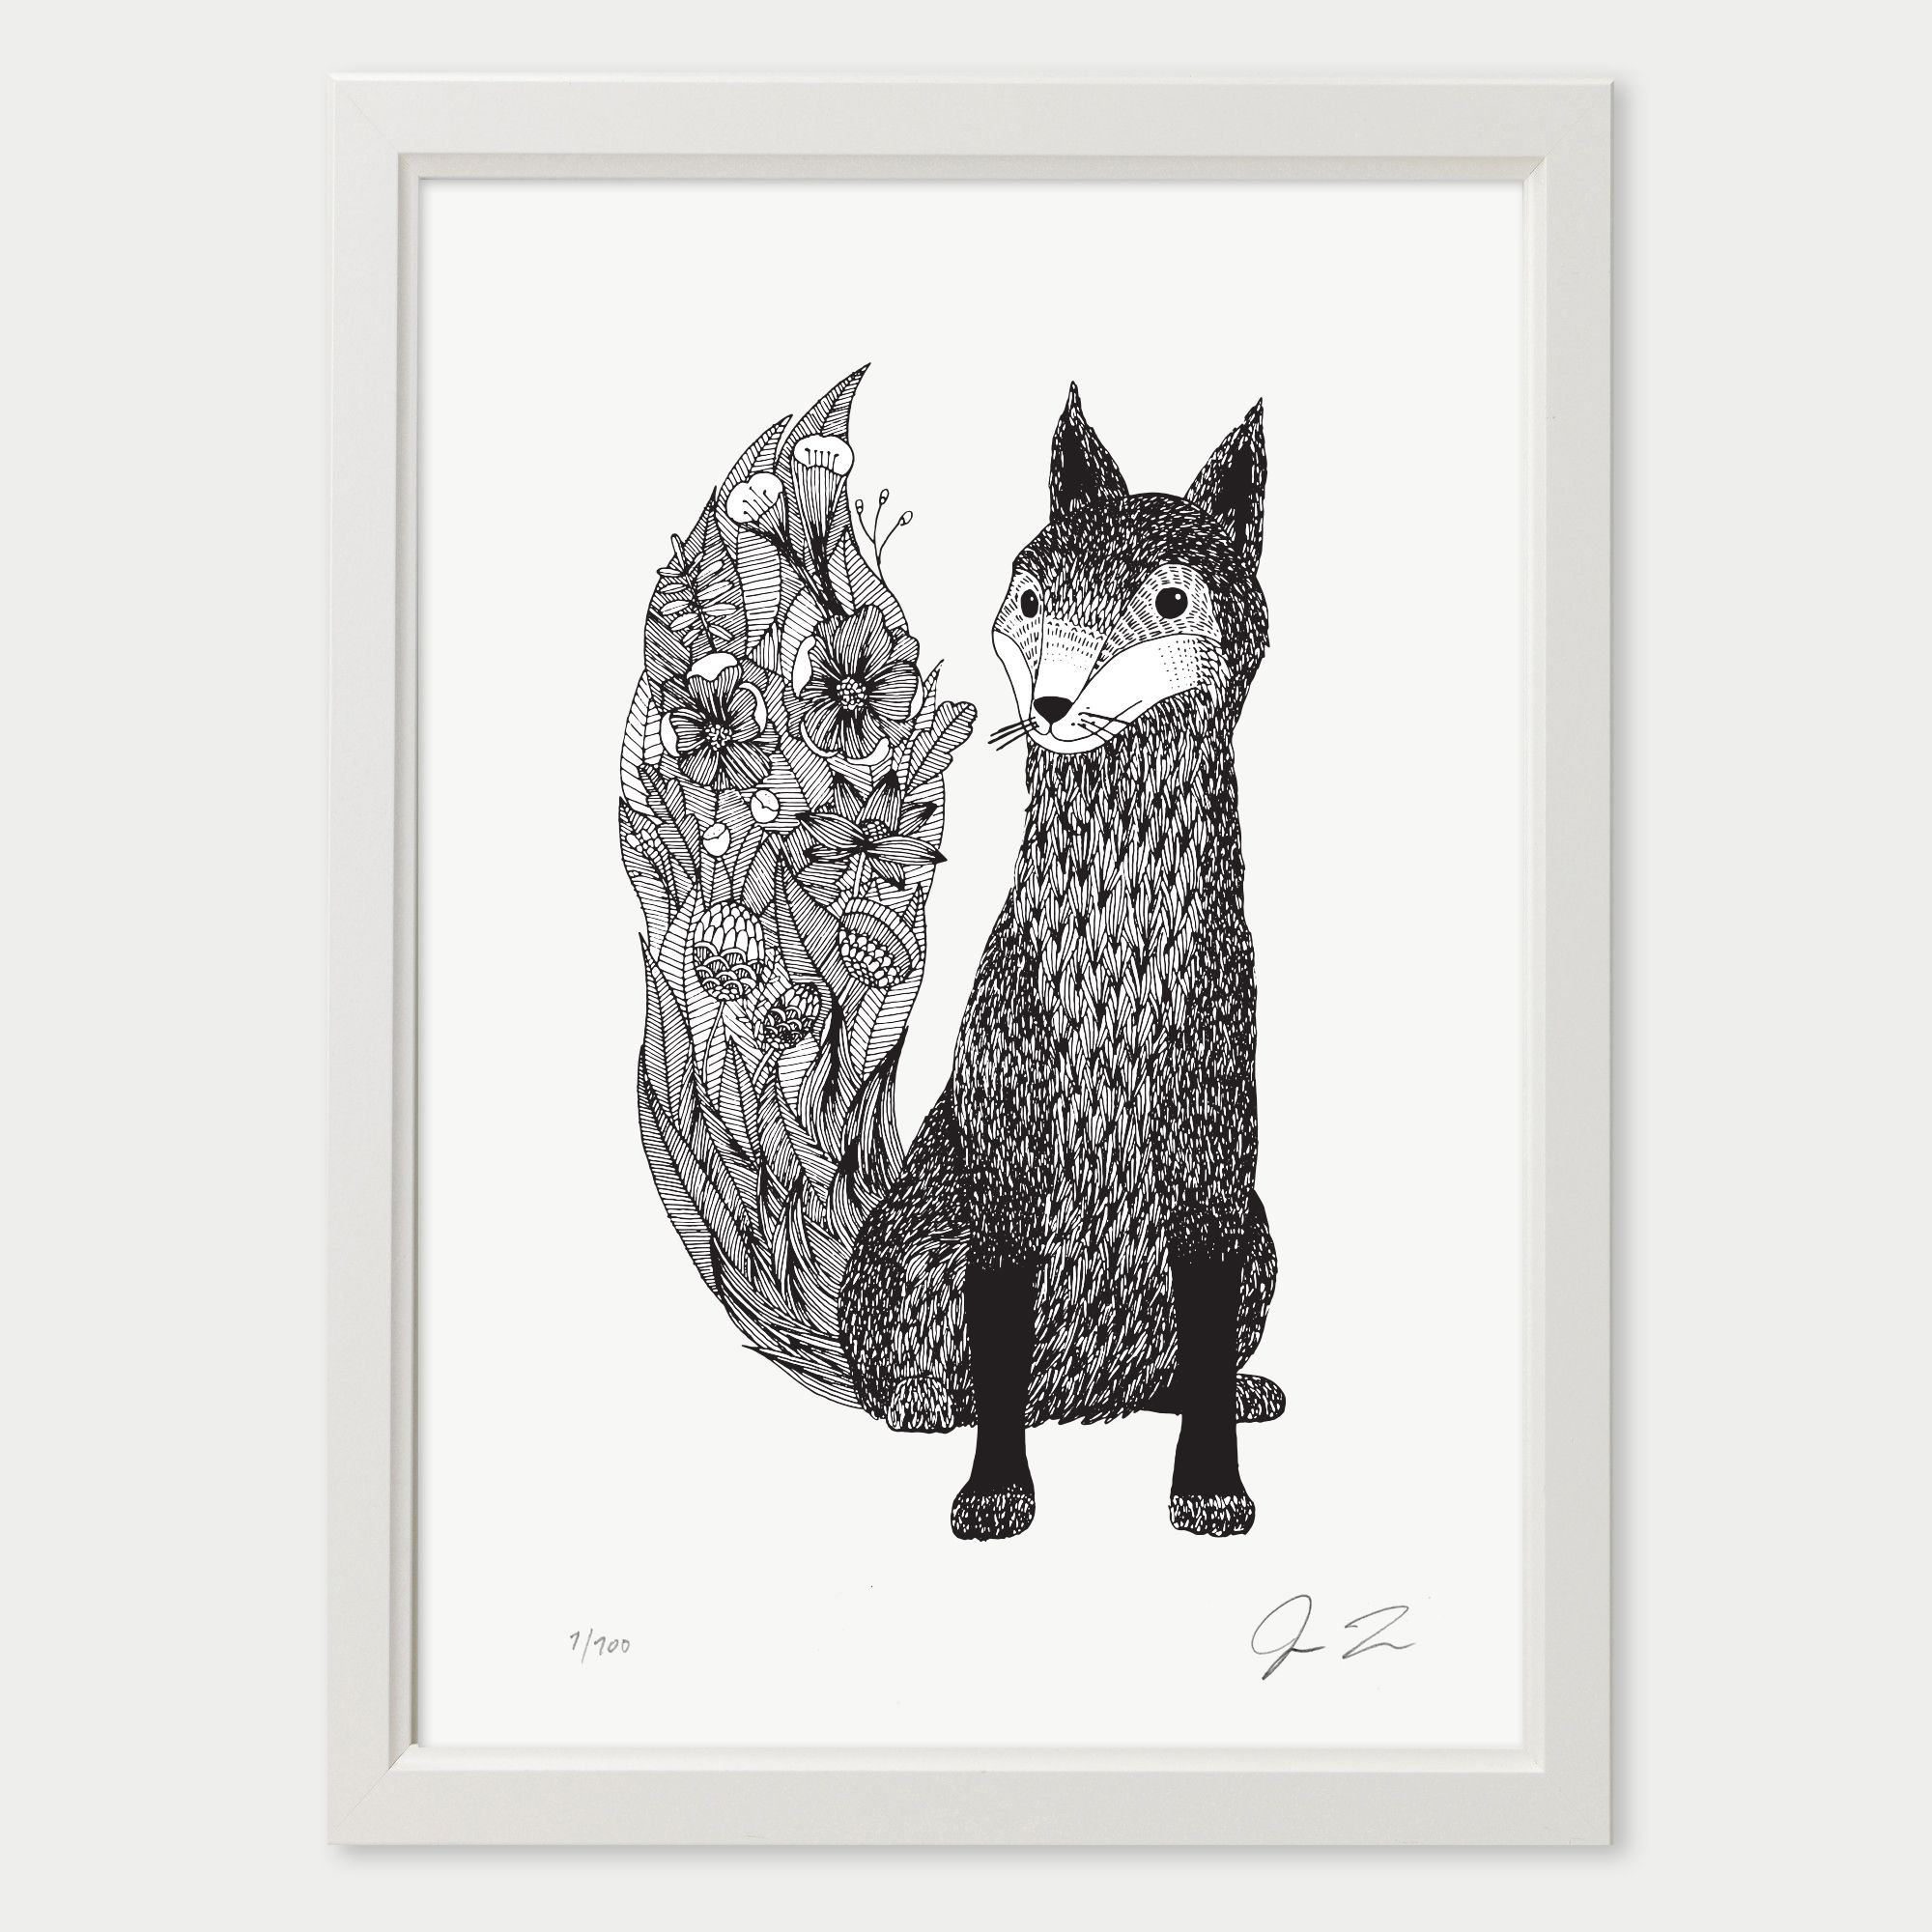 Illustration by Justin LandonSigned and NumberedLaser Print in Deep BlackPrinted on Hahnemühlen Drawing PaperSIZES:A4:…